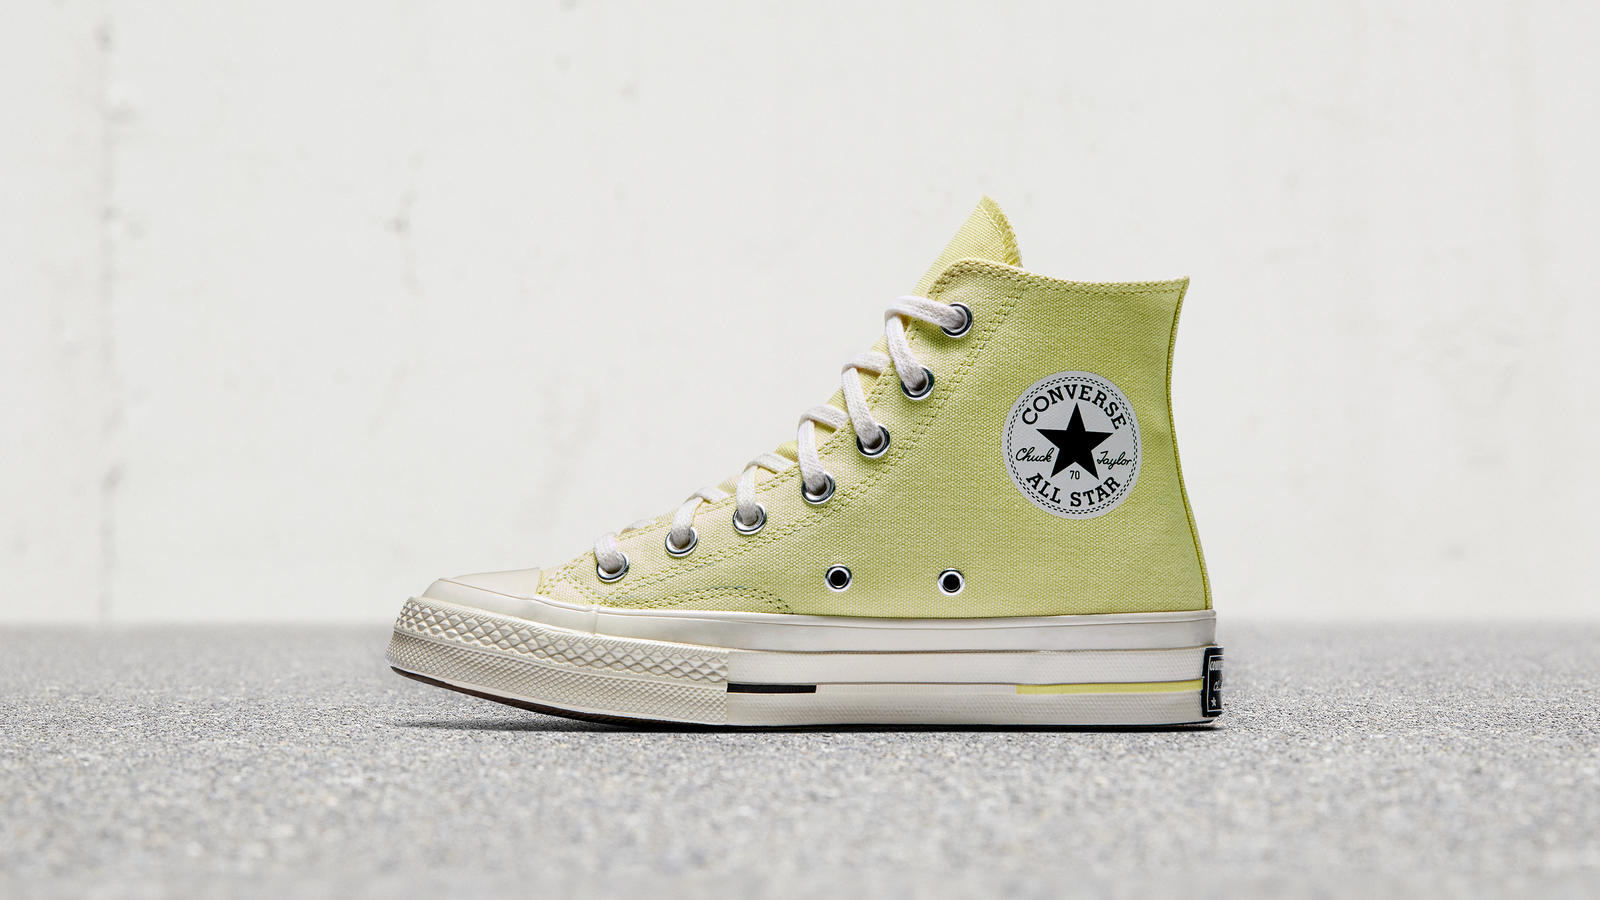 fe176b6258d Converse Chuck 70 Canvas Brights Pack - Nike News